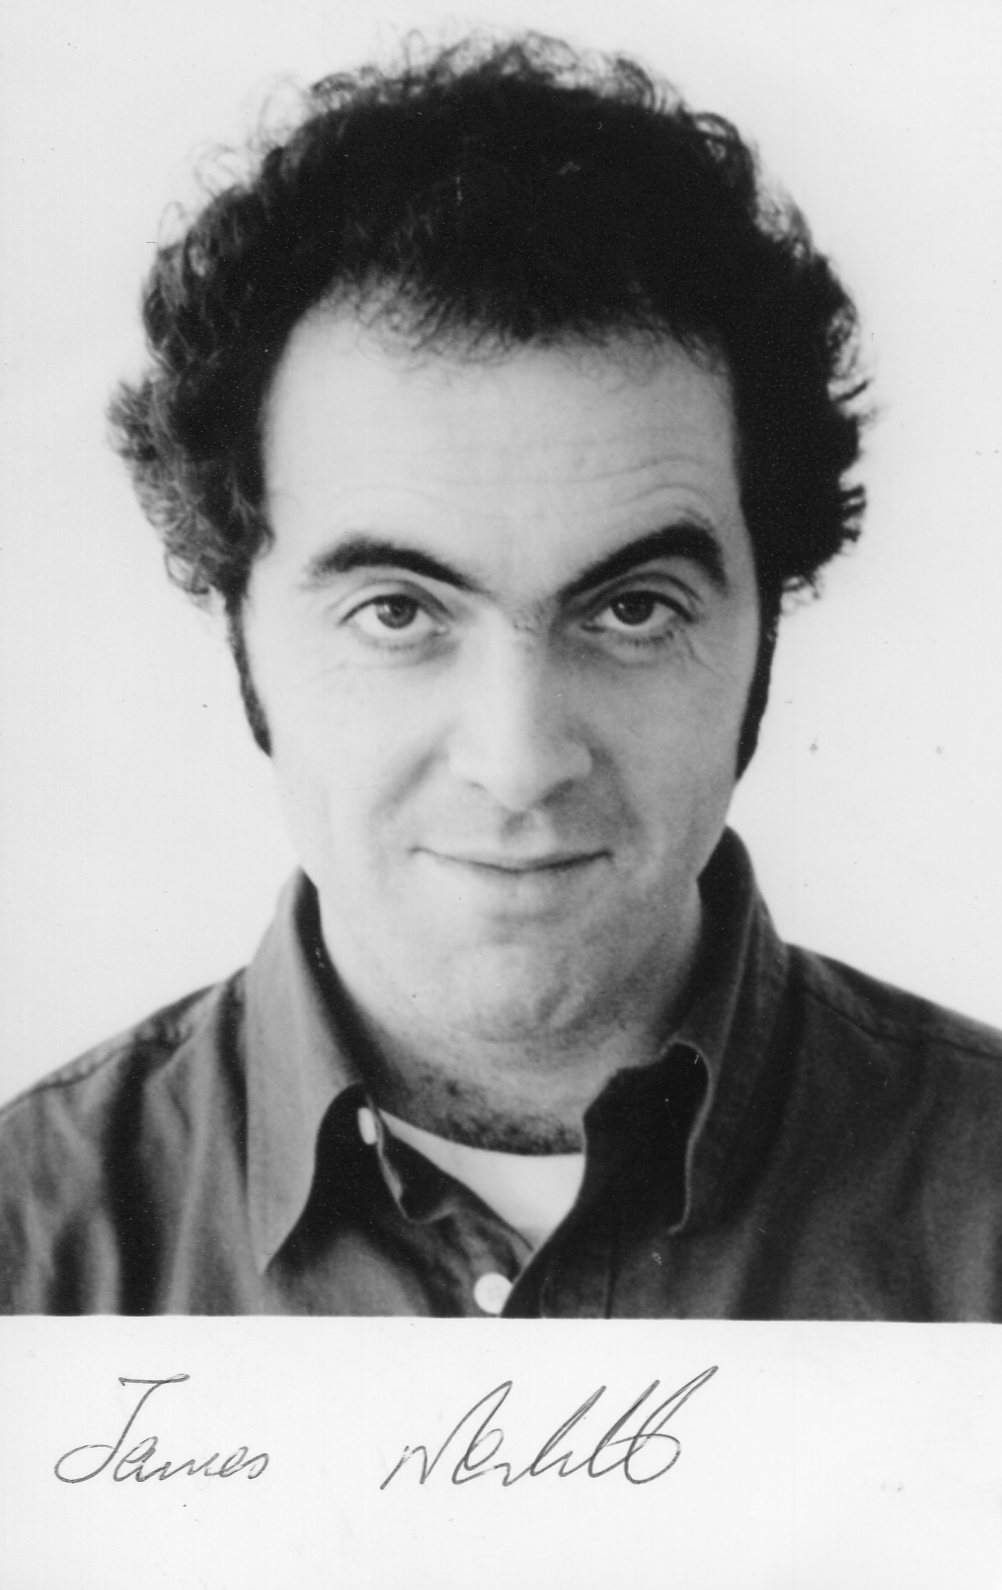 images James Nesbitt (born 1965)